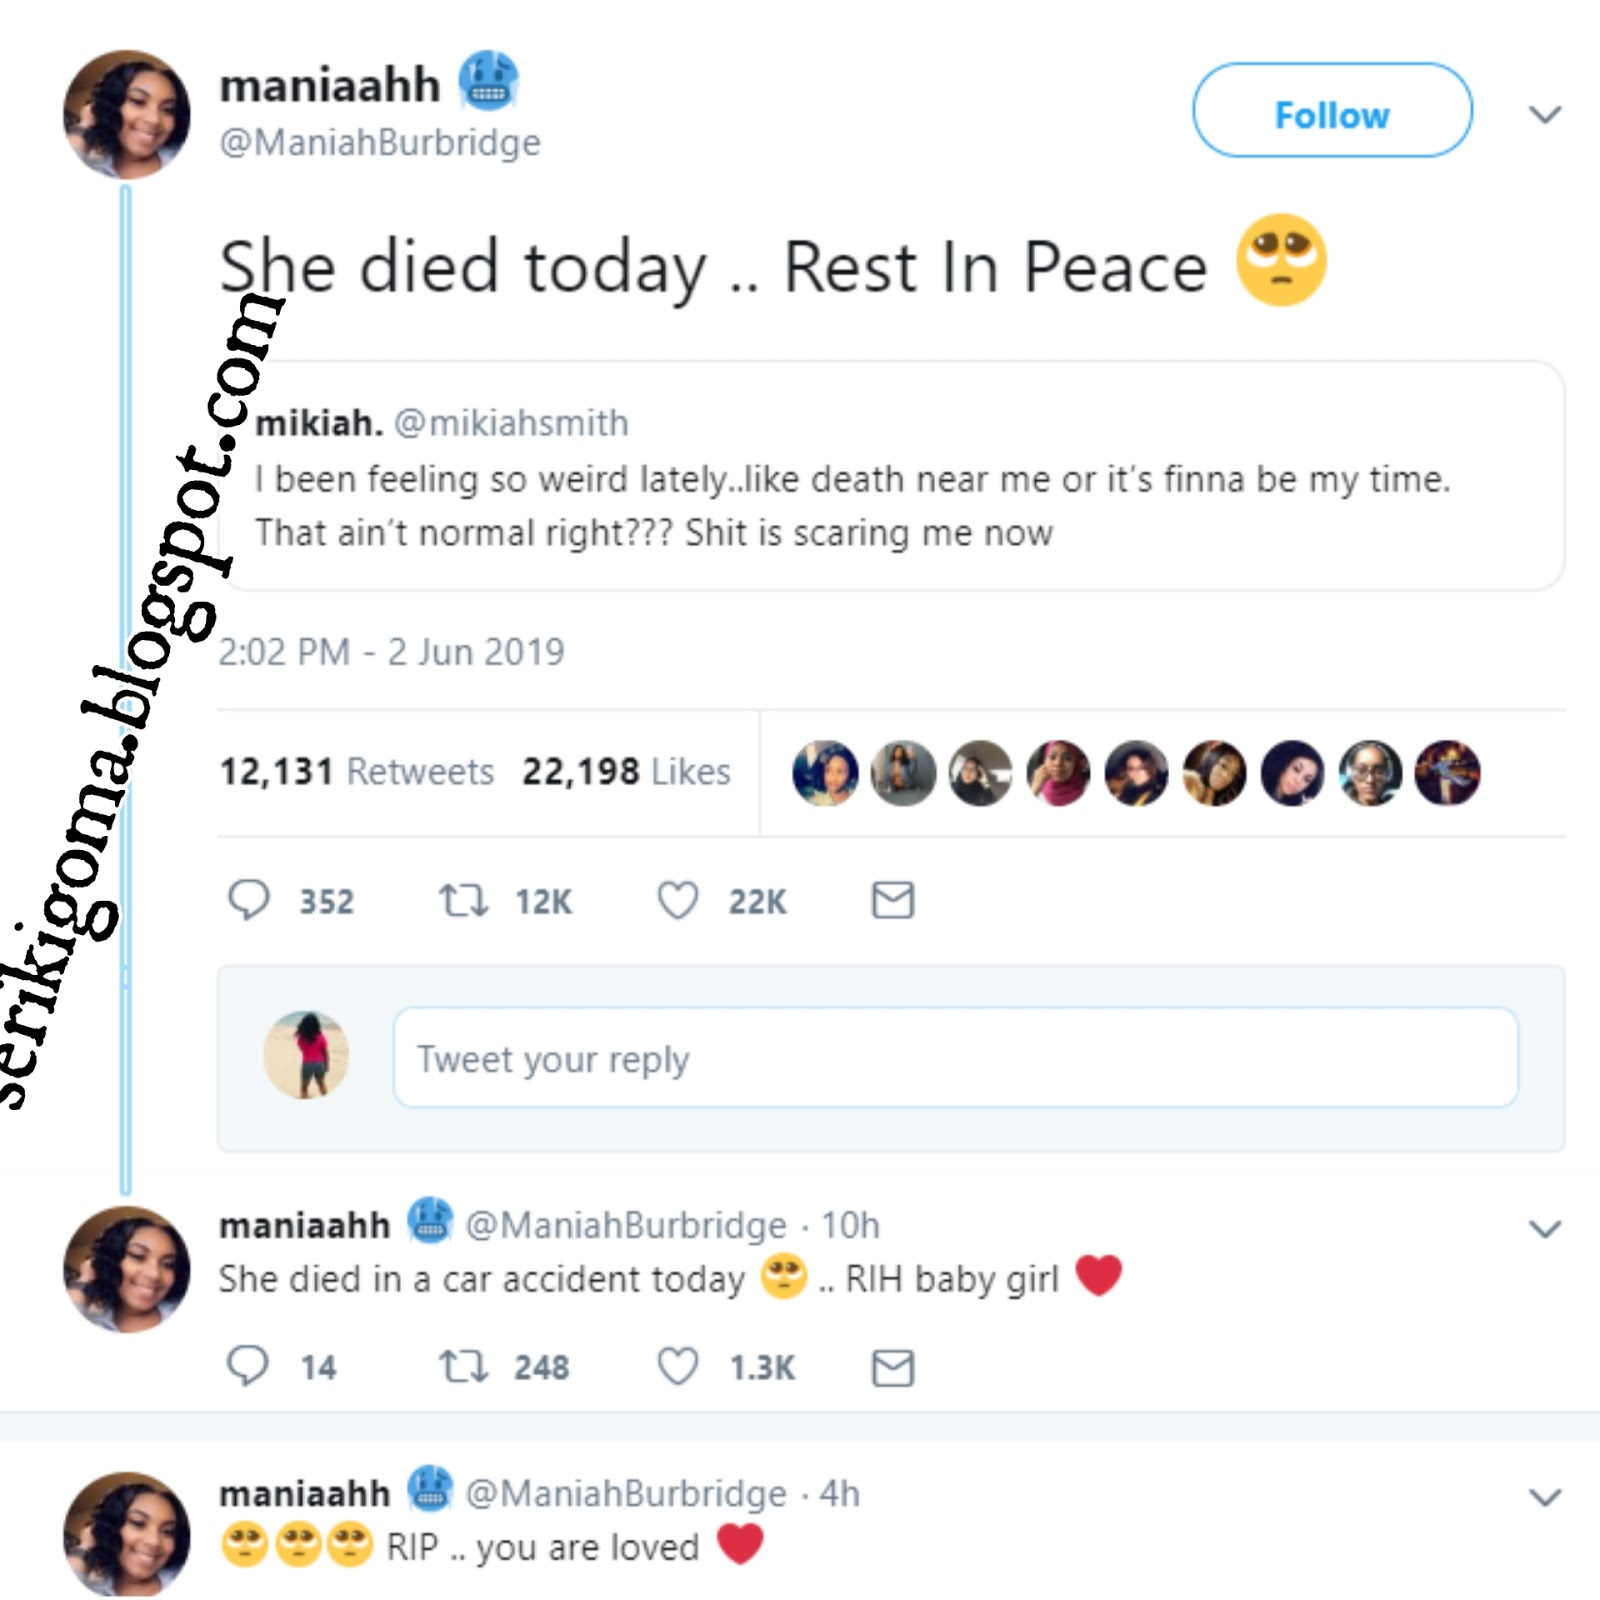 YOUNG LADY DIES 10 DAYS AFTER TWEETING THAT SHE FEELS LIKE IT'S HER